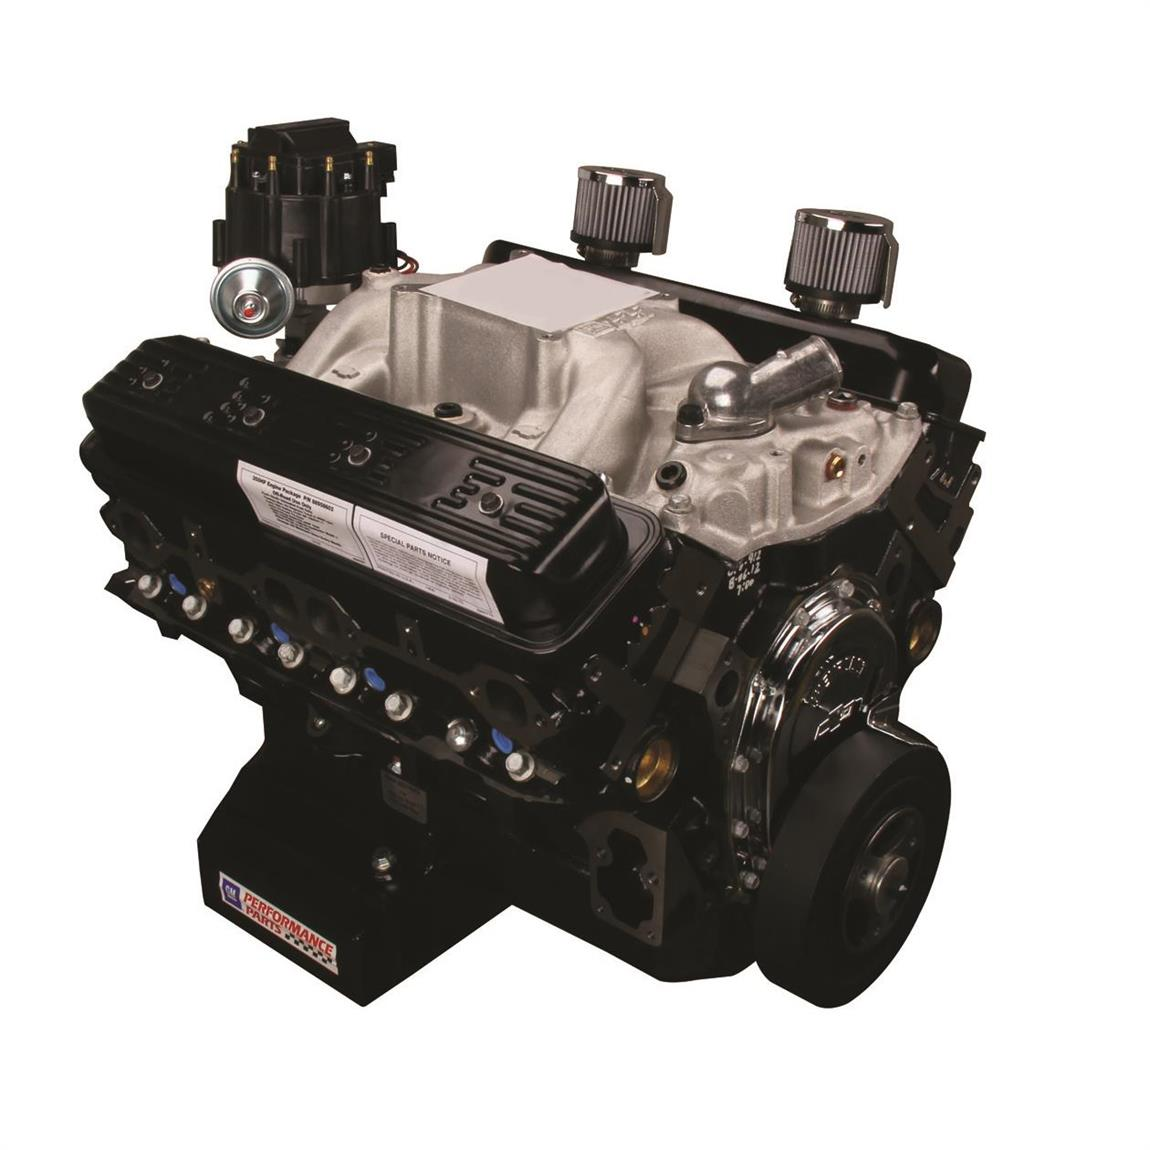 292 chevy engine kit home gt engine kits gt chevy 292 1963 1989 gt chevy - Chevrolet Performance 19258602 Ct350 Gm Sealed 602 Chevy Crate Engine